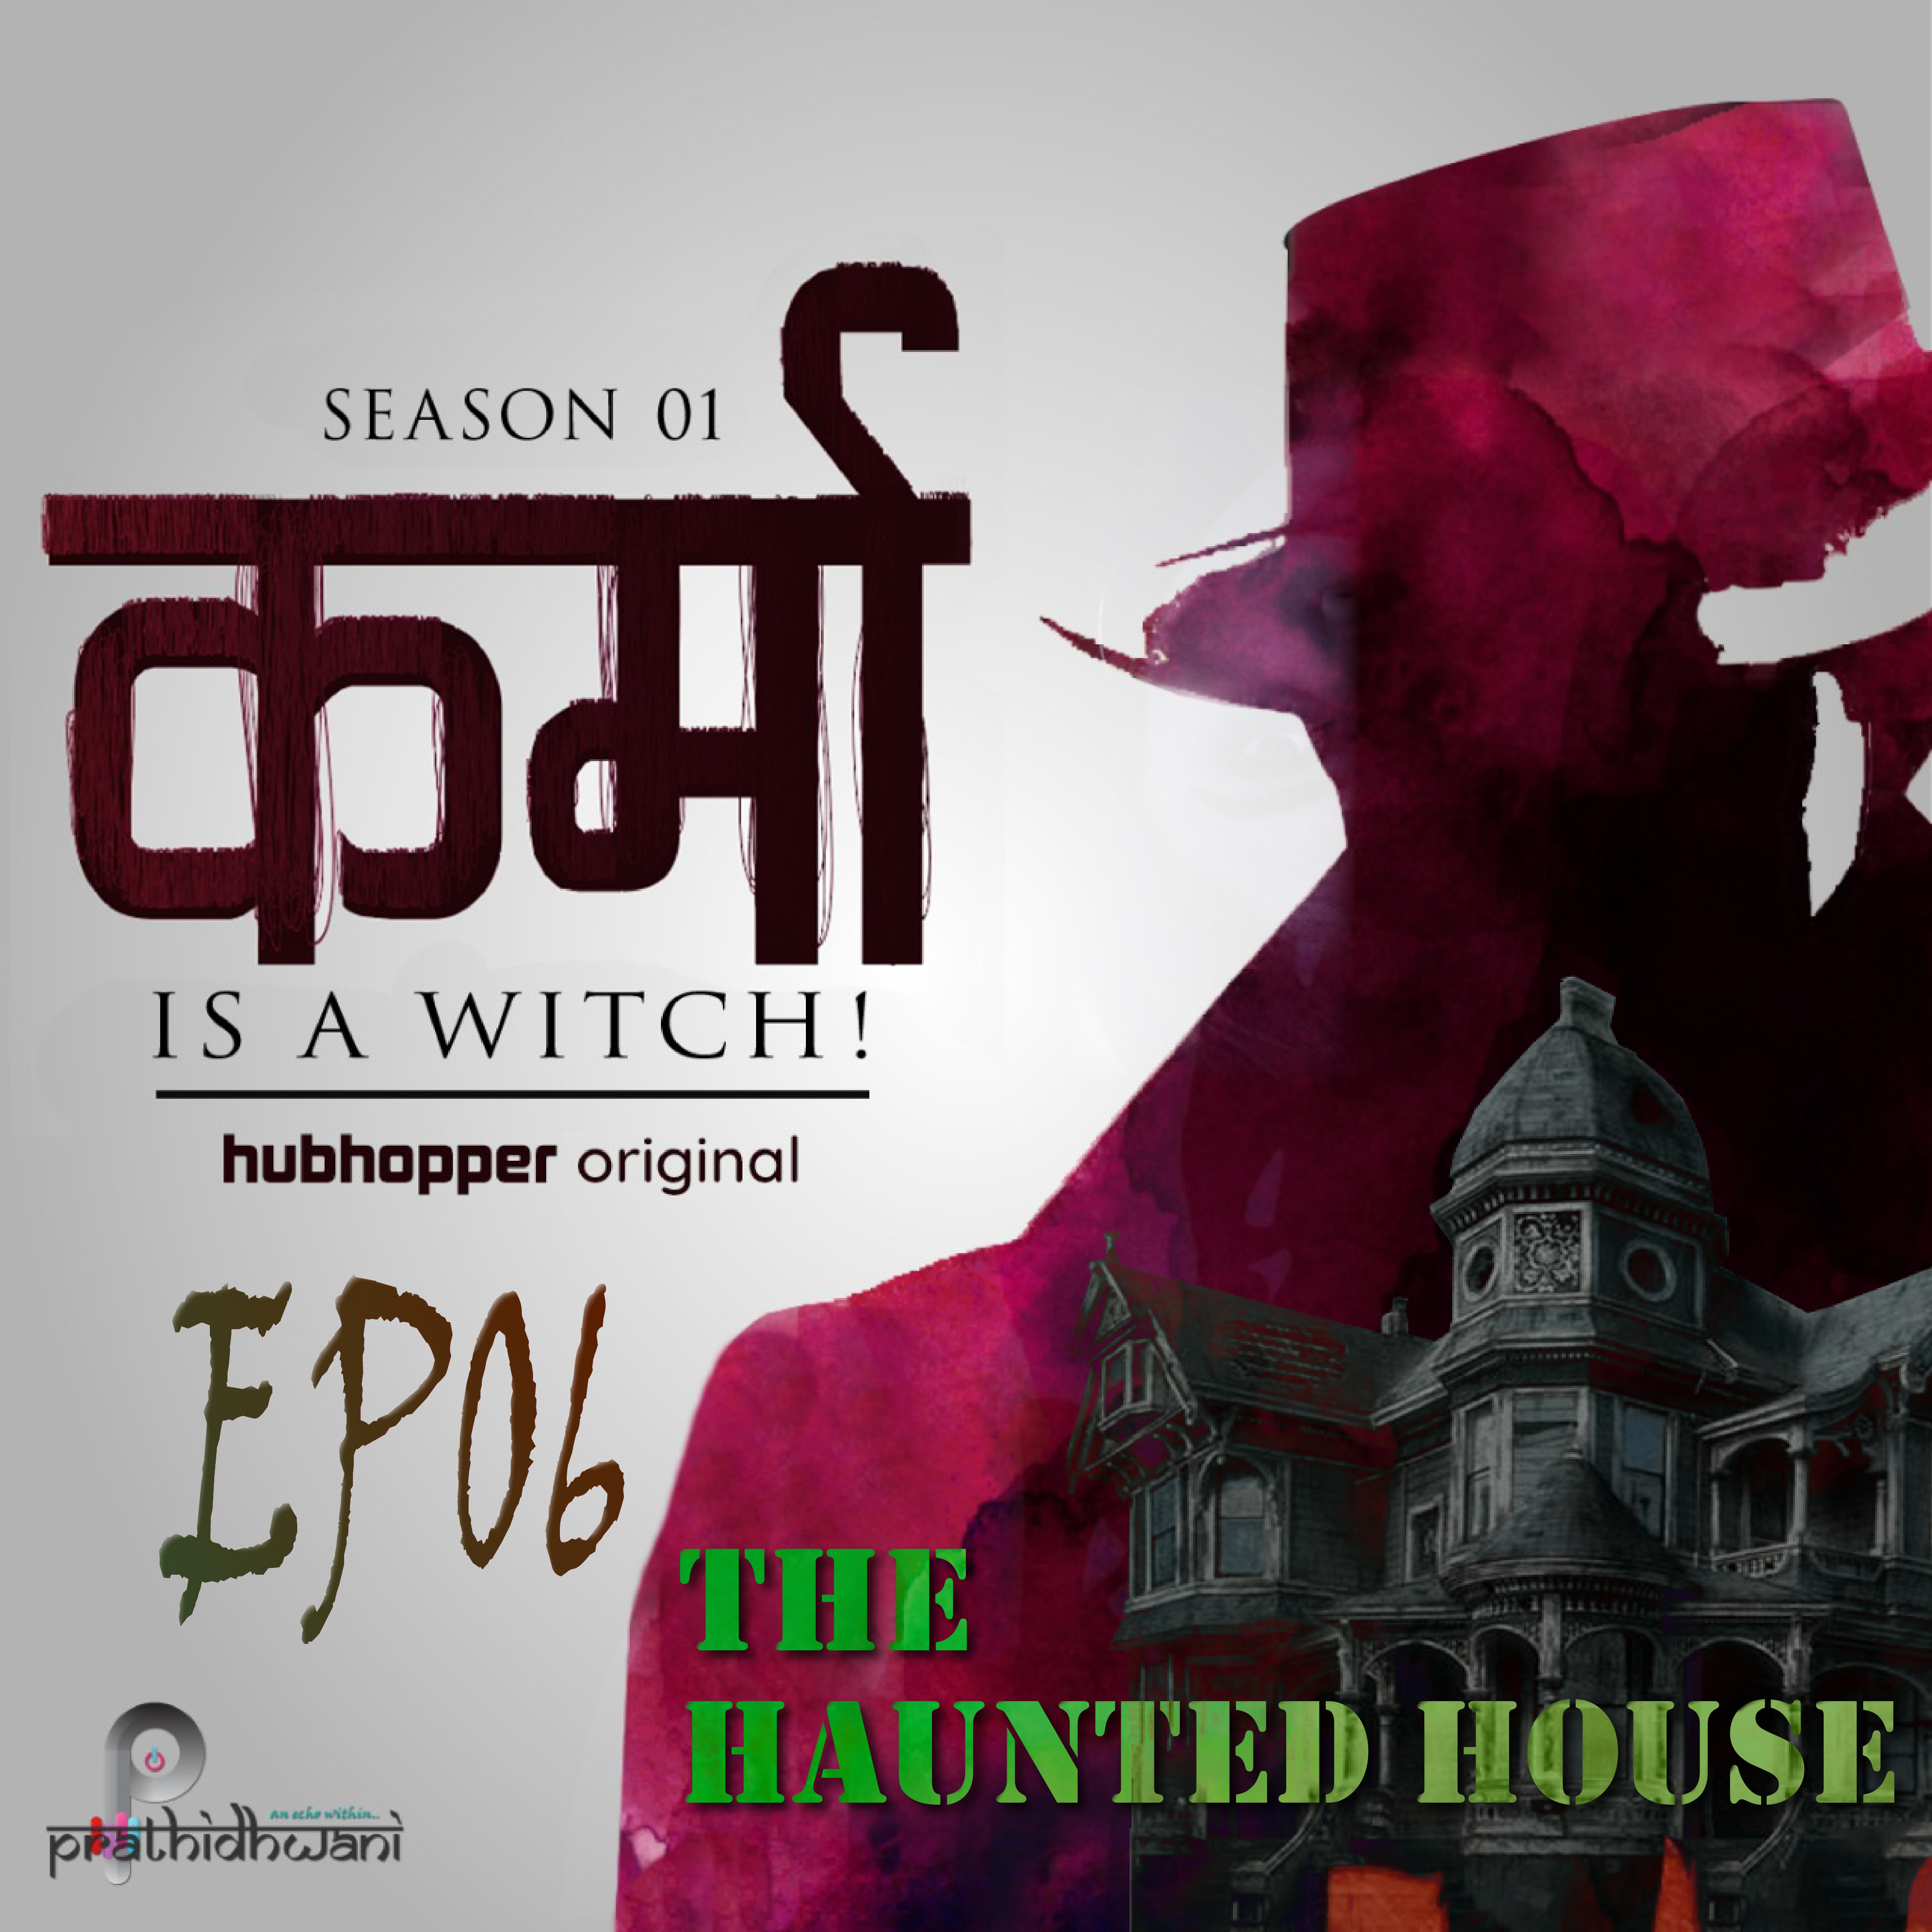 S01EP06: The Haunted House